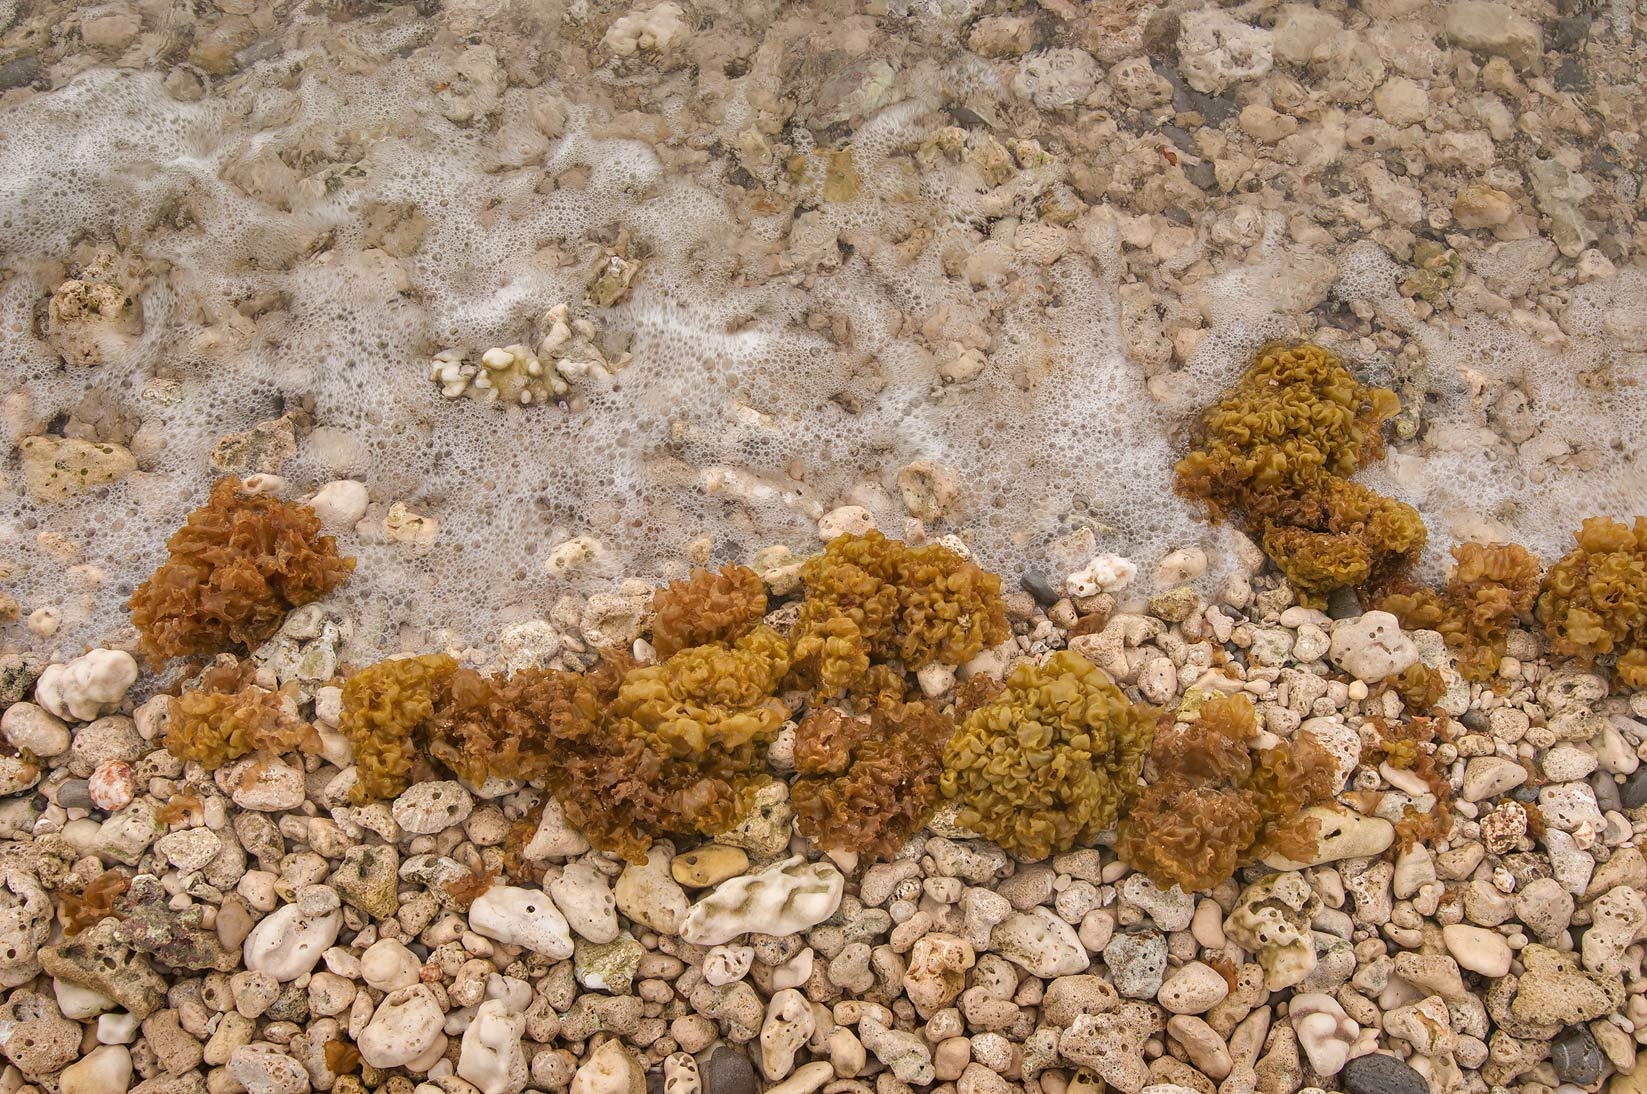 Dead corals and seaweed (algae) on western beach in Haloul Island (Jazirat Halul). Qatar